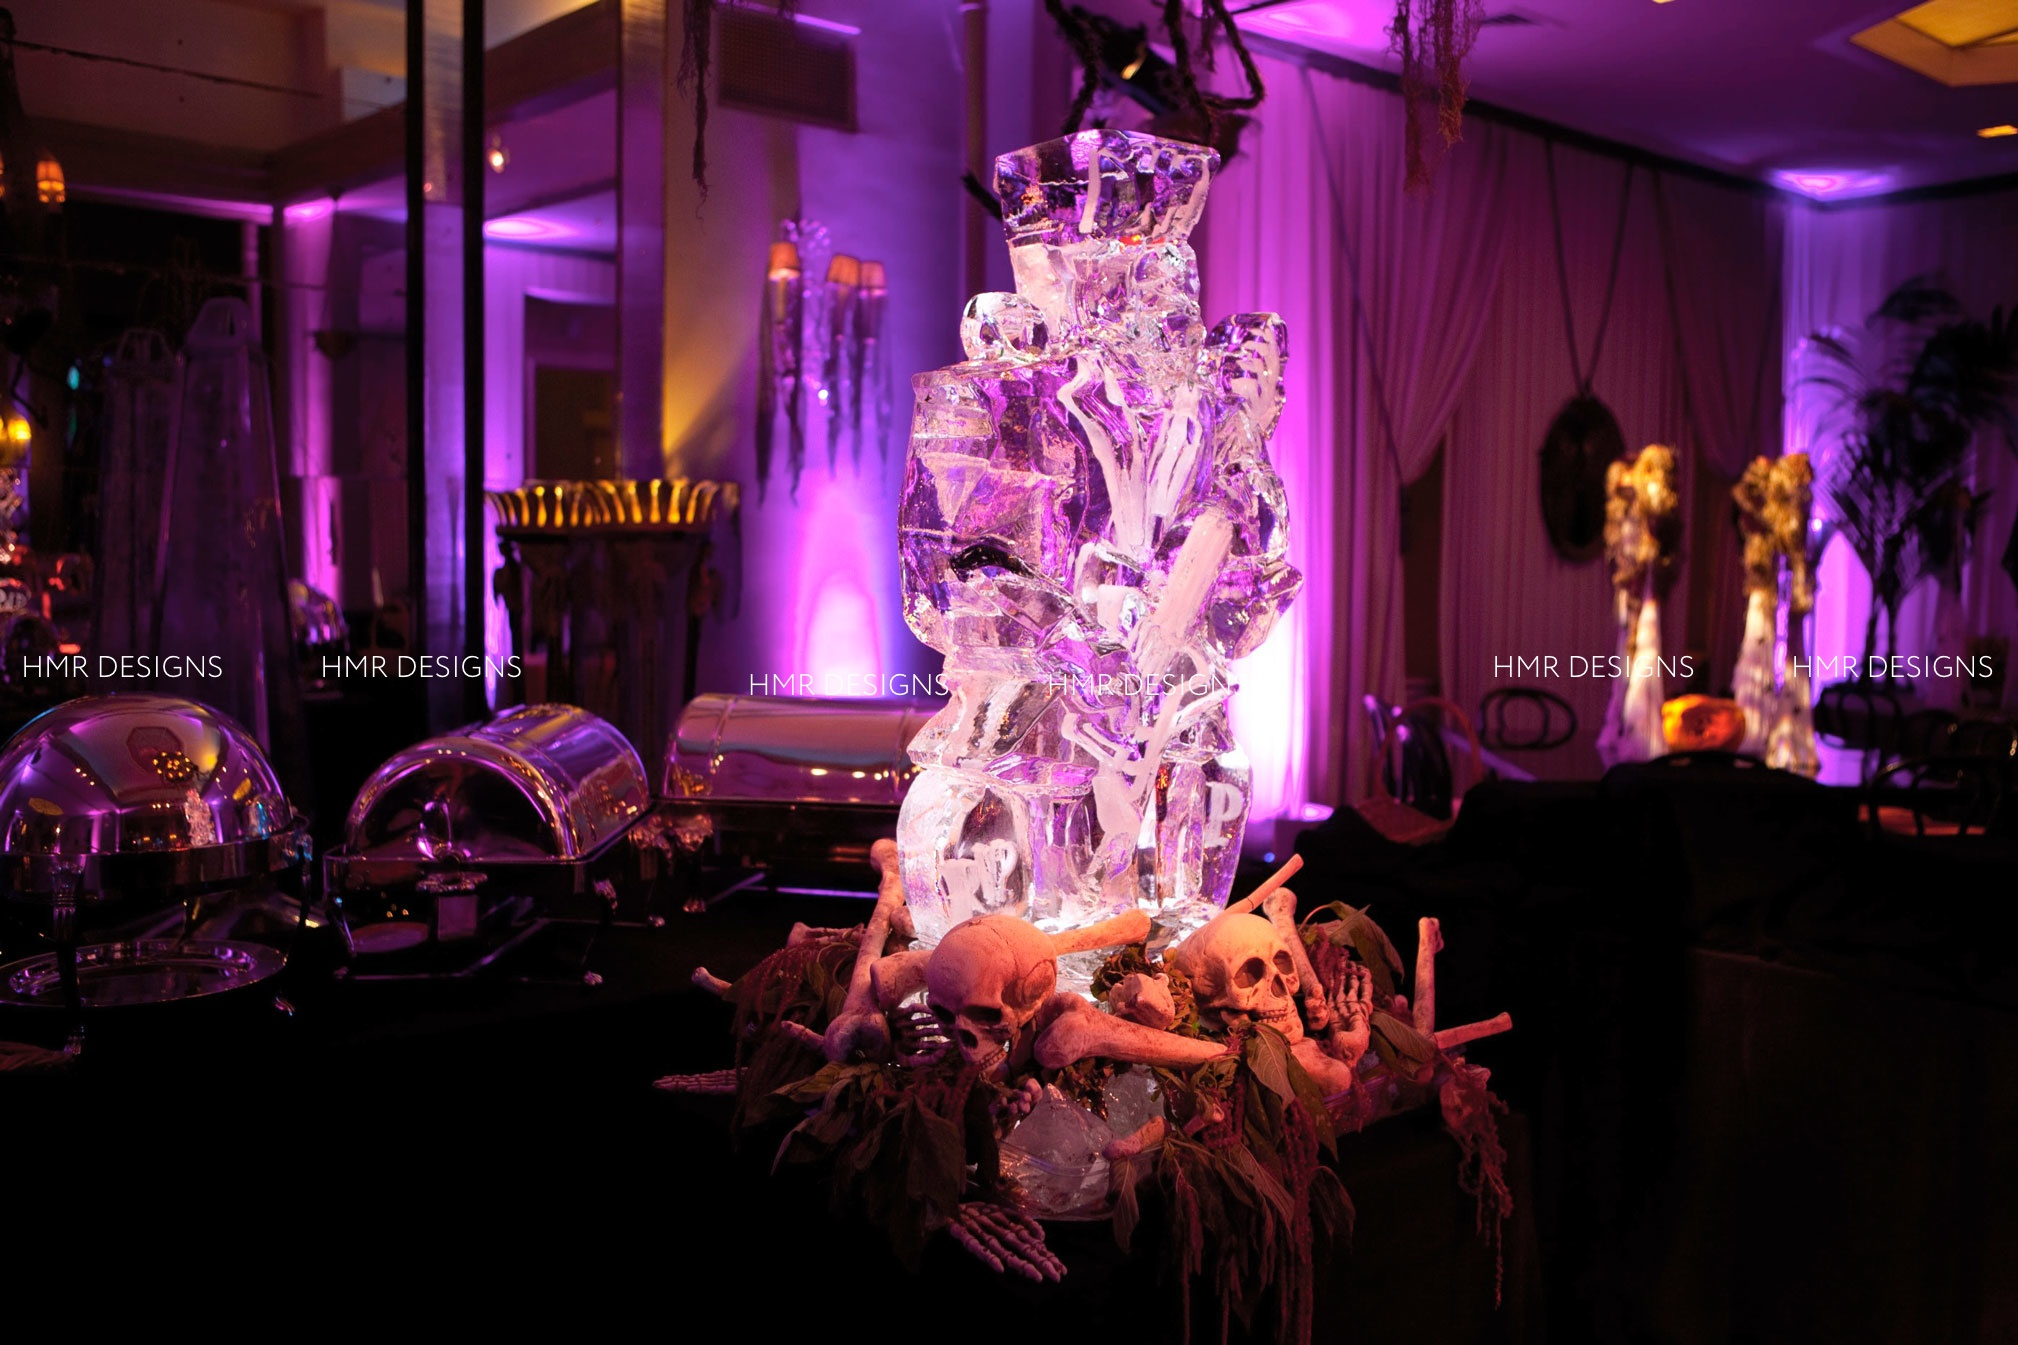 Halloween cocktail party by HMR Designs at Casino CLub CHicago